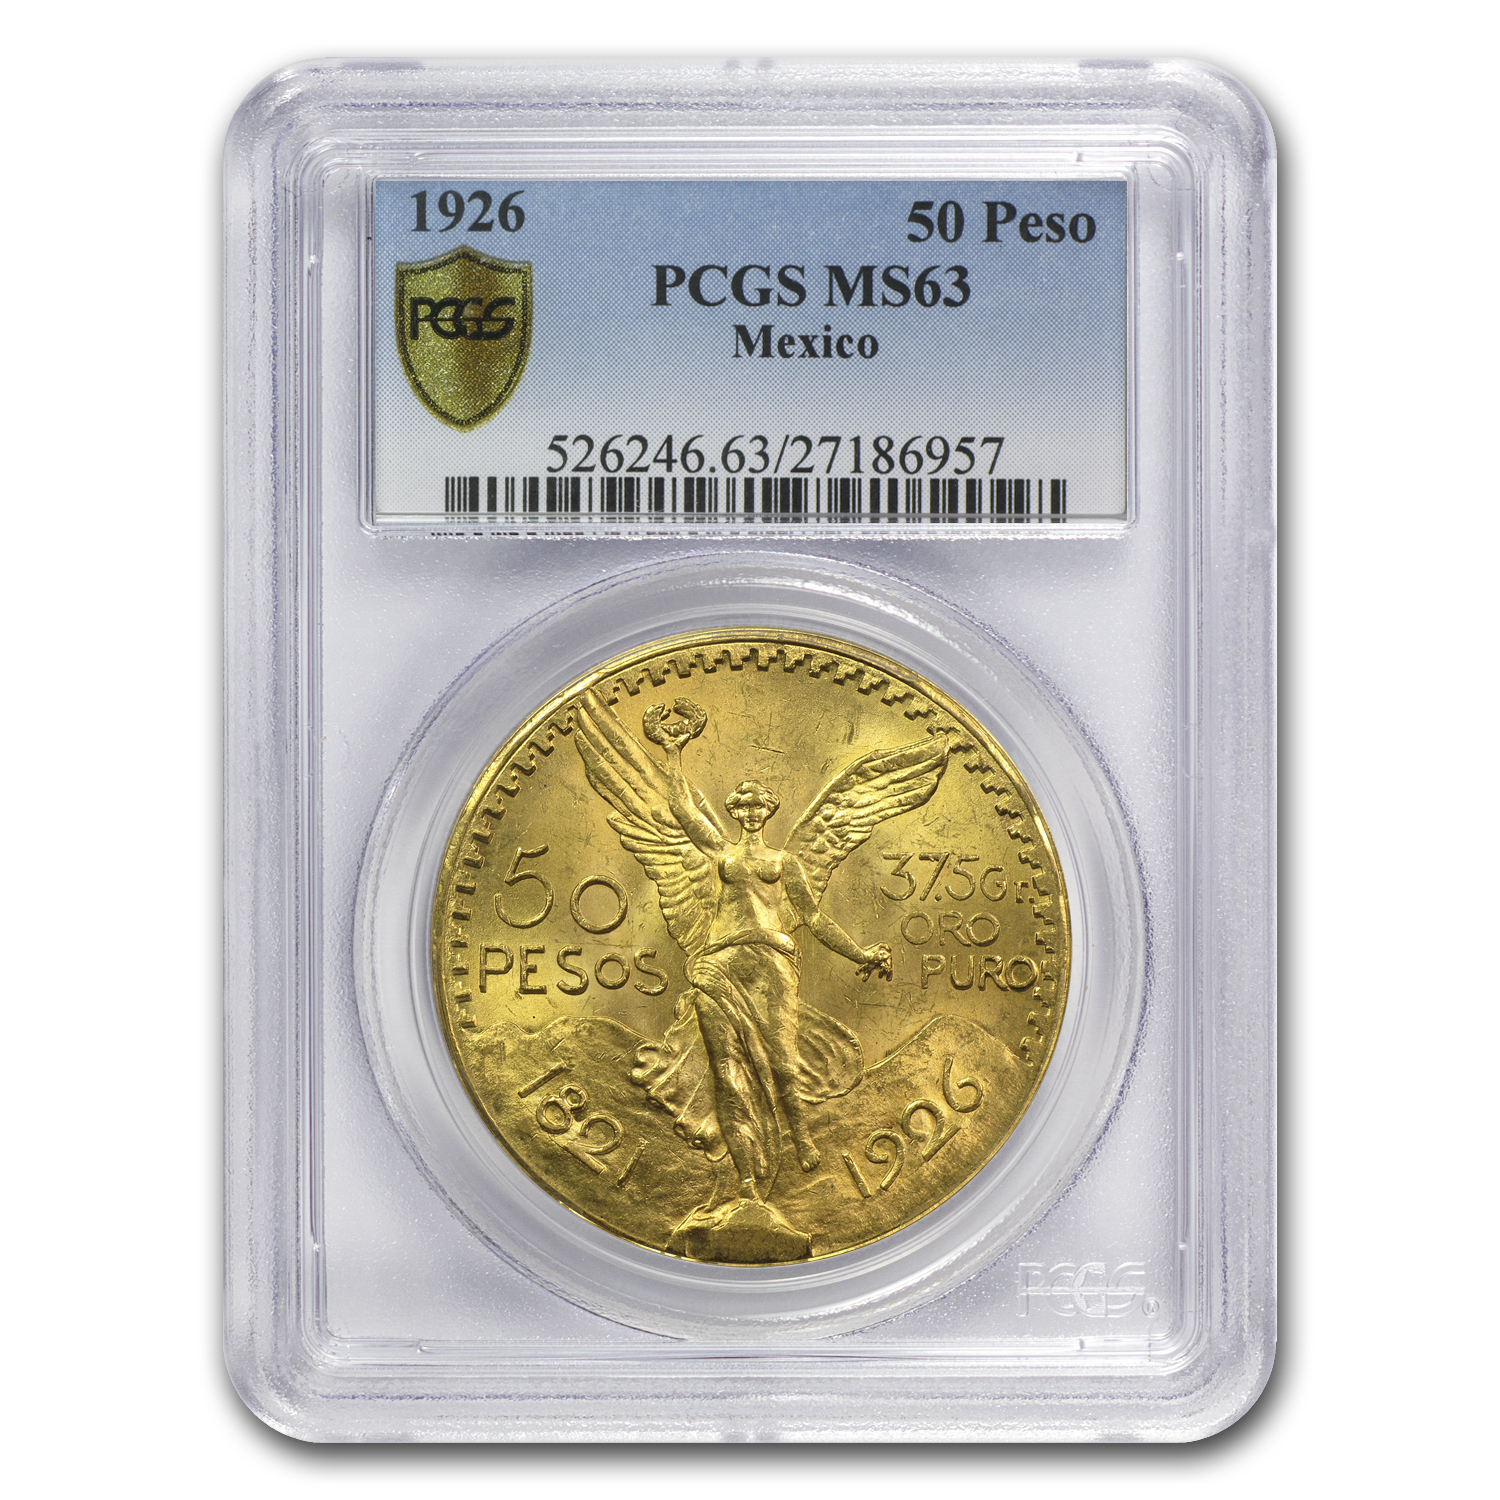 Mexico 1926 50 Pesos Gold Coin - MS-63 PCGS (Secure Plus!)